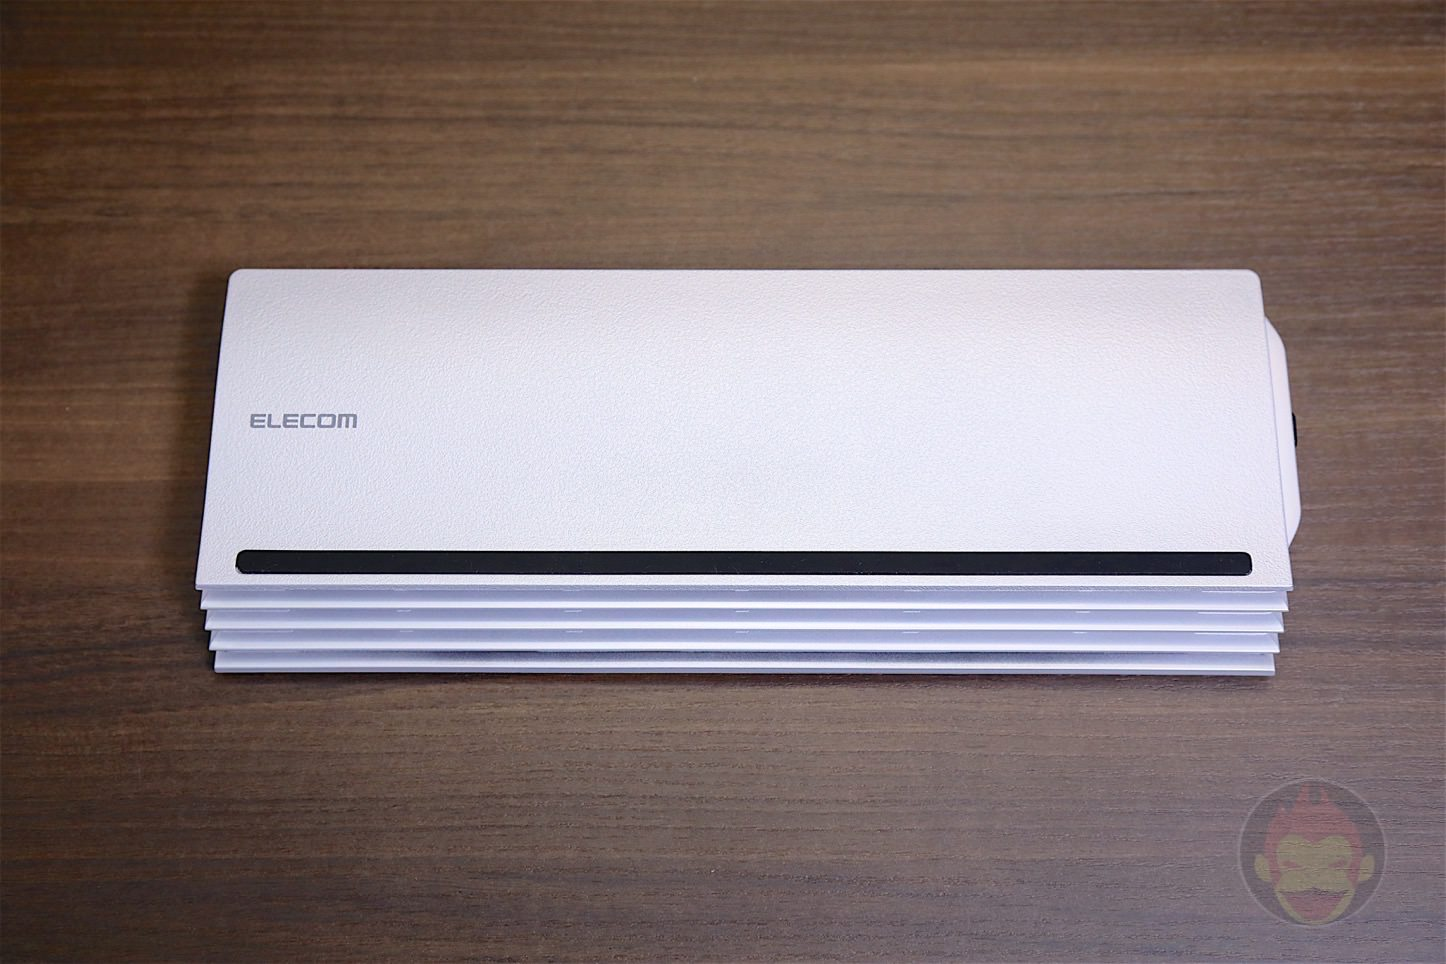 Elecom Notebook Cooler SX CL20SV W